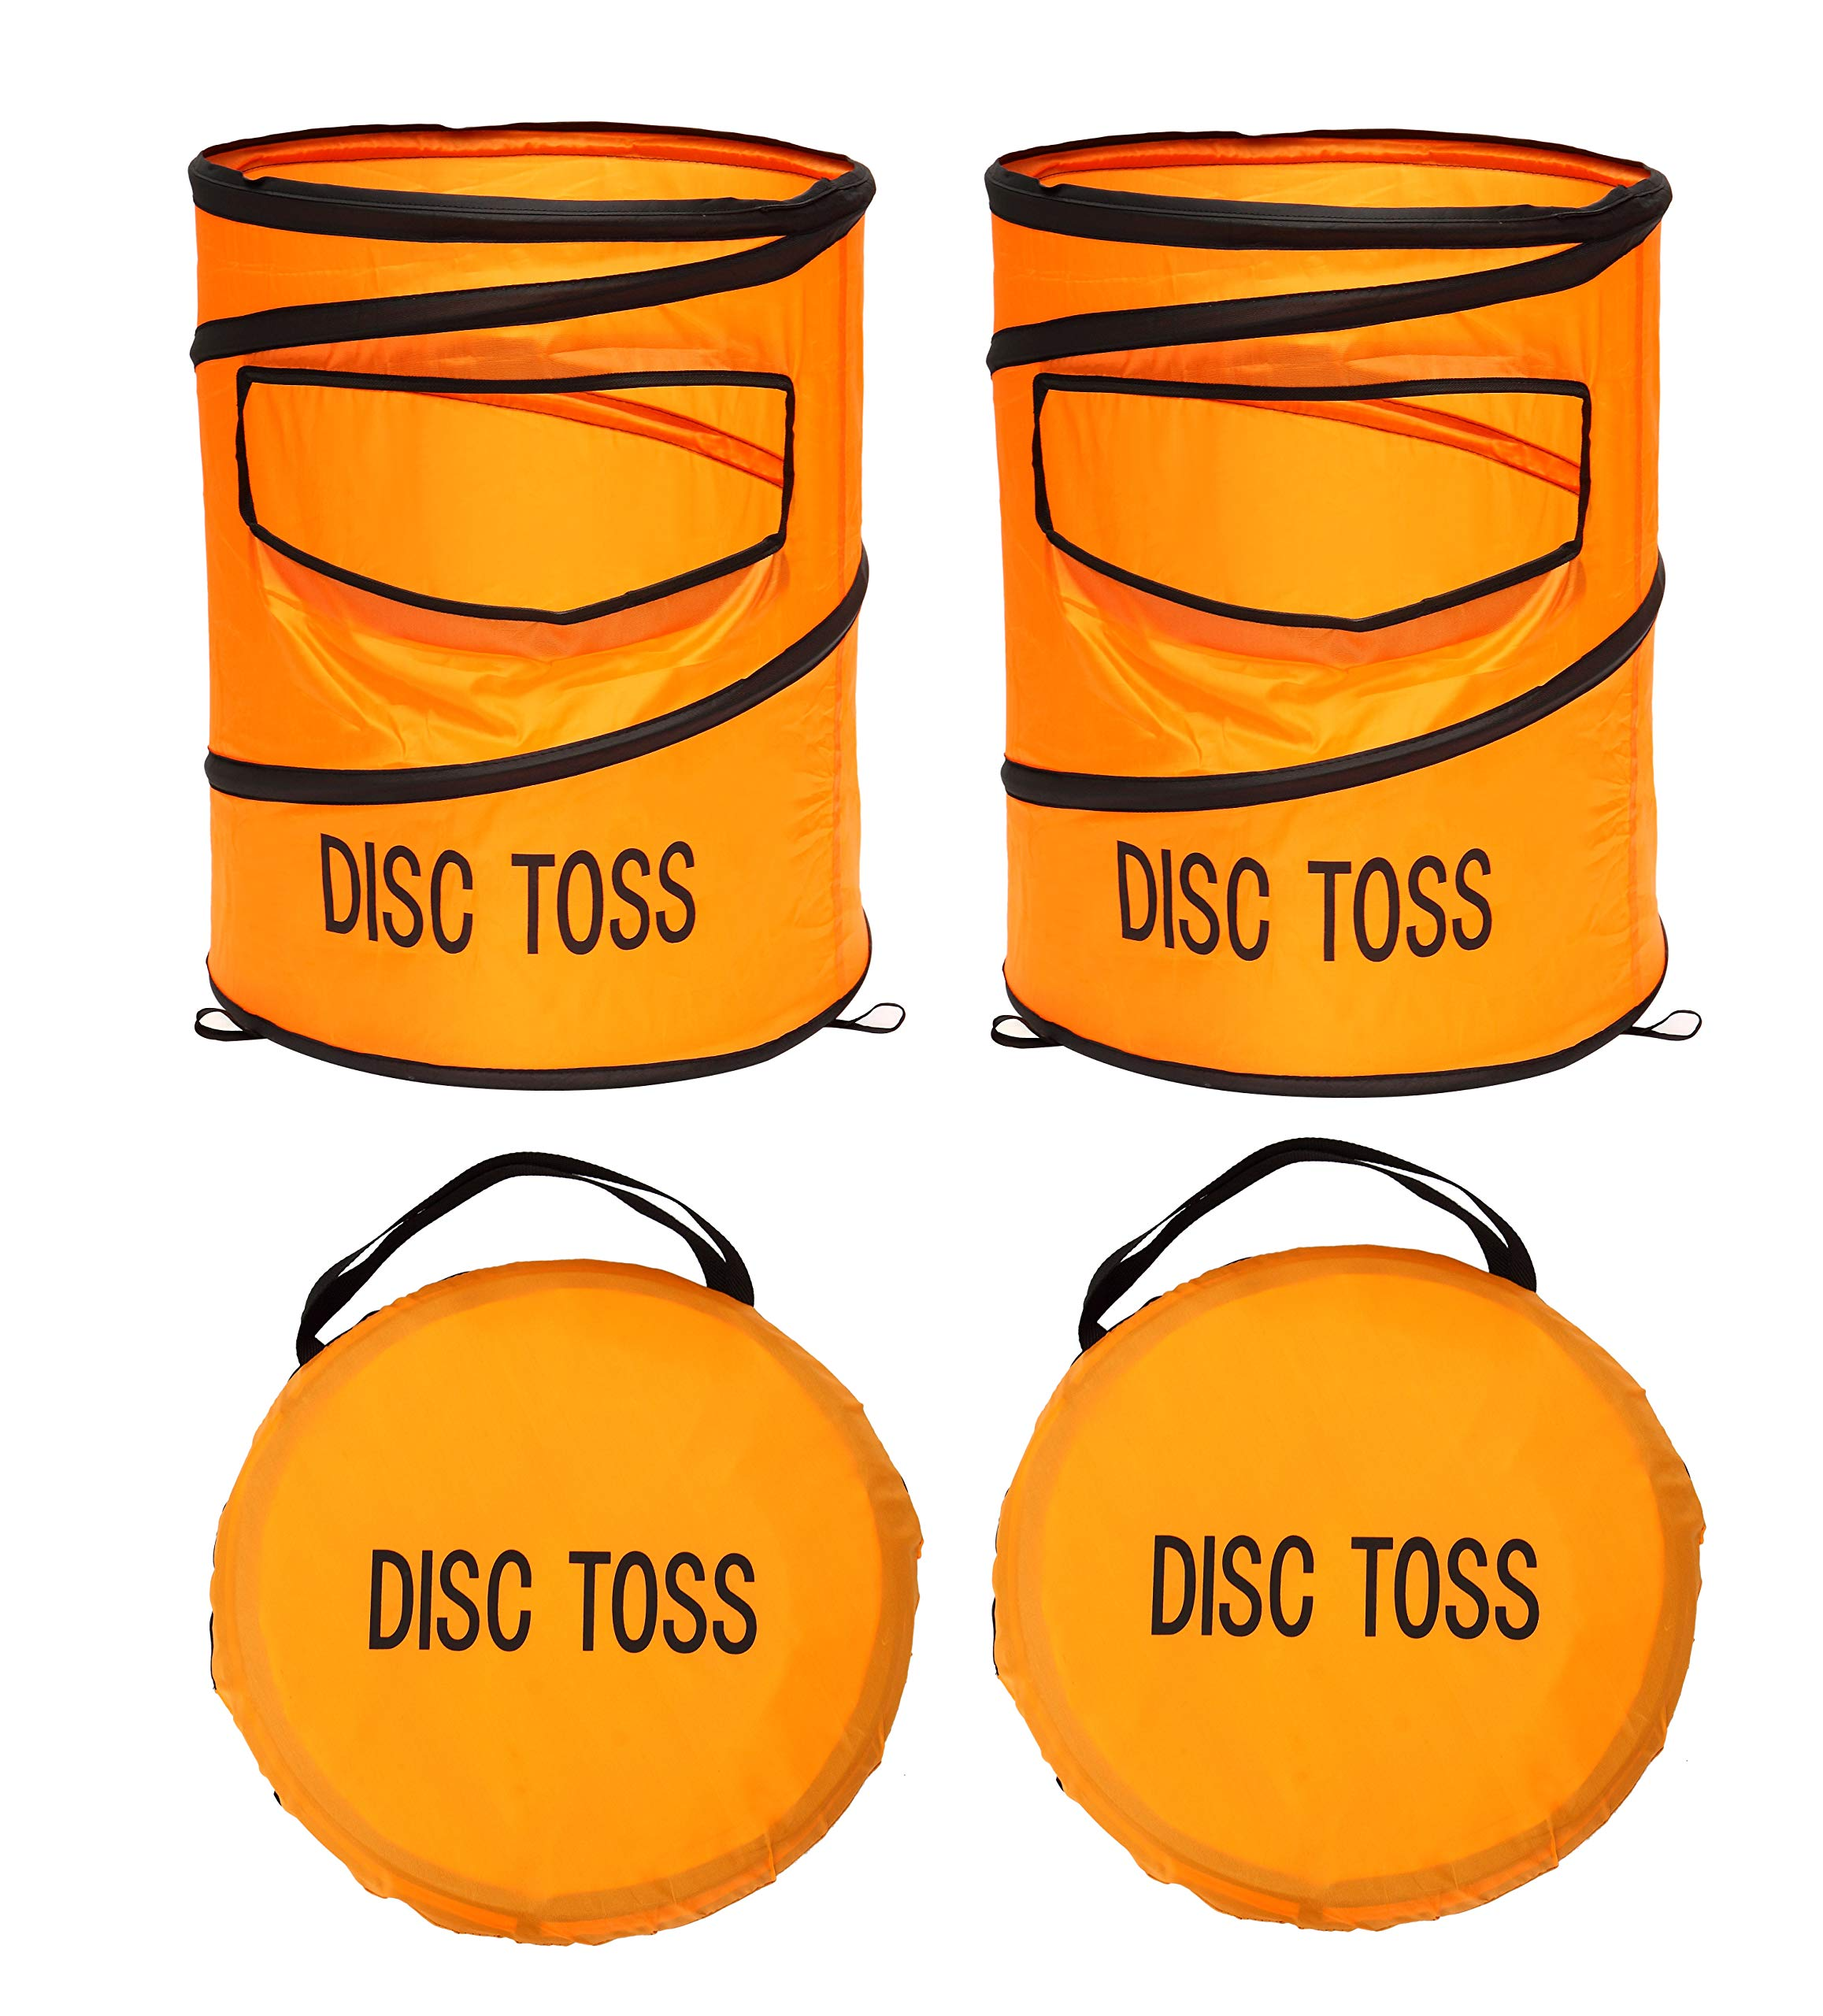 Win SPORTS Folding Disc Slam Game Set, Flying Disc Toss Slamming Game Set (2 Targets & 2 Flying Disc & Carrying Case), Kids Adults Fun Game Perfect for Tailgating, Backyard, Family Parties, BBQs by Win SPORTS